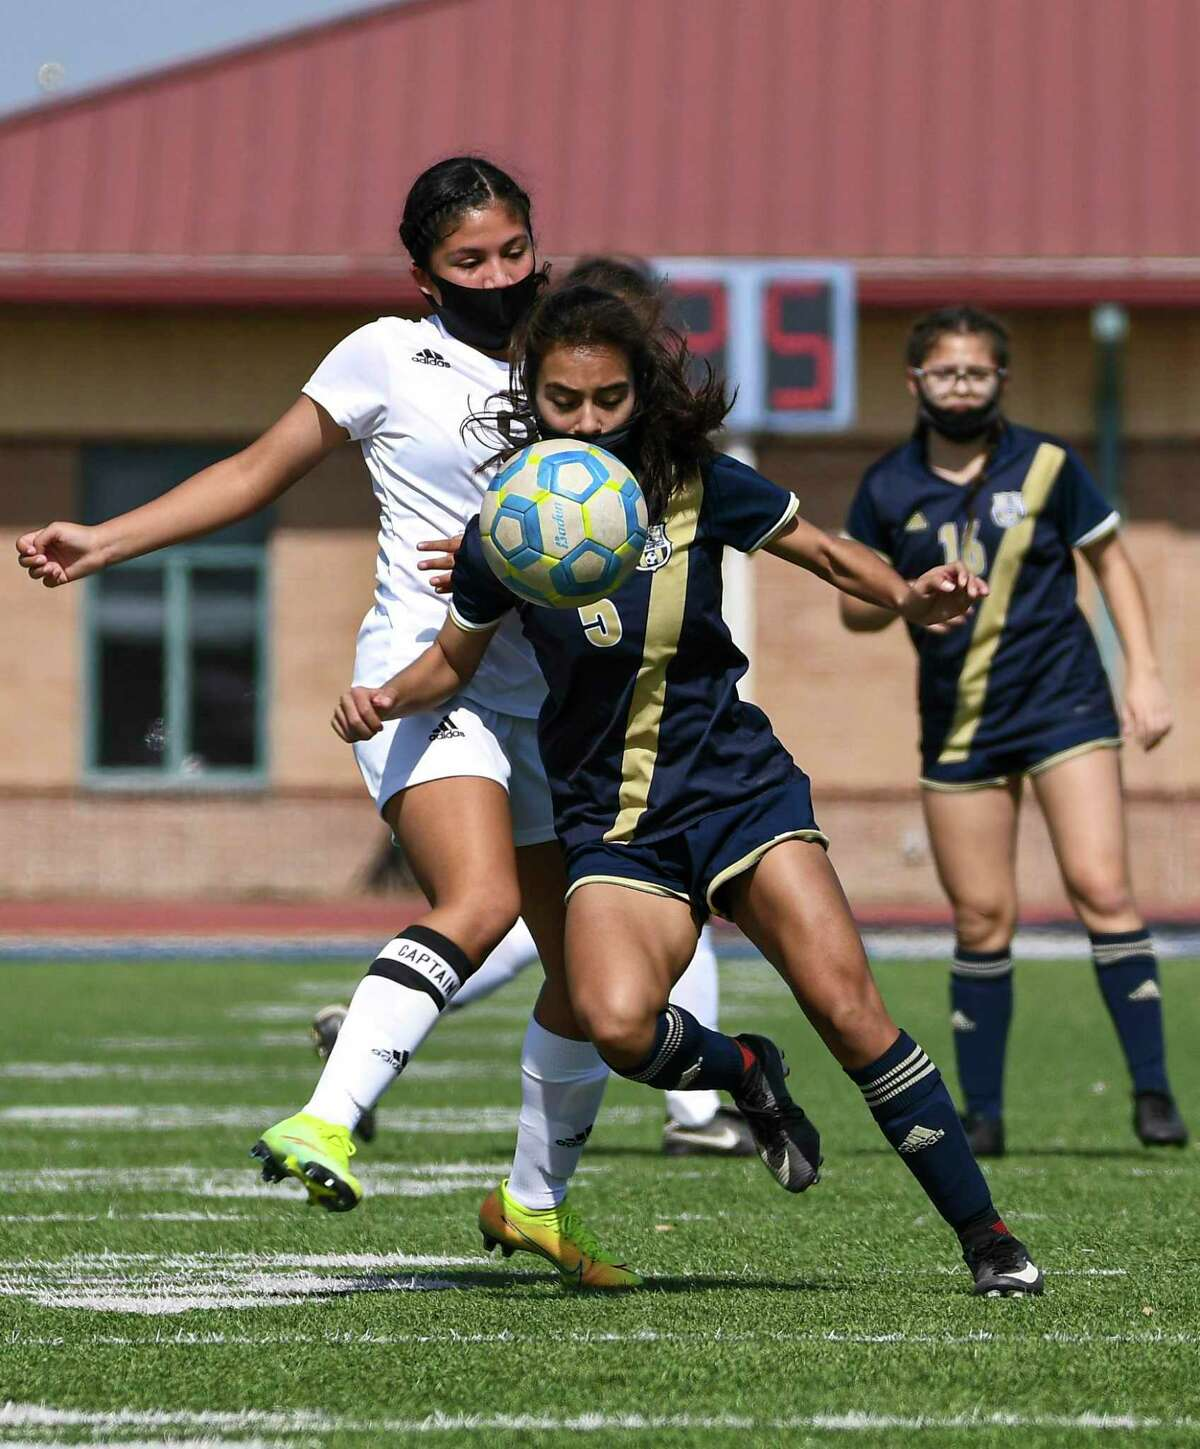 The Lady Bulldogs opened district with an 8-1 win over the Lady Panthers on Saturday.